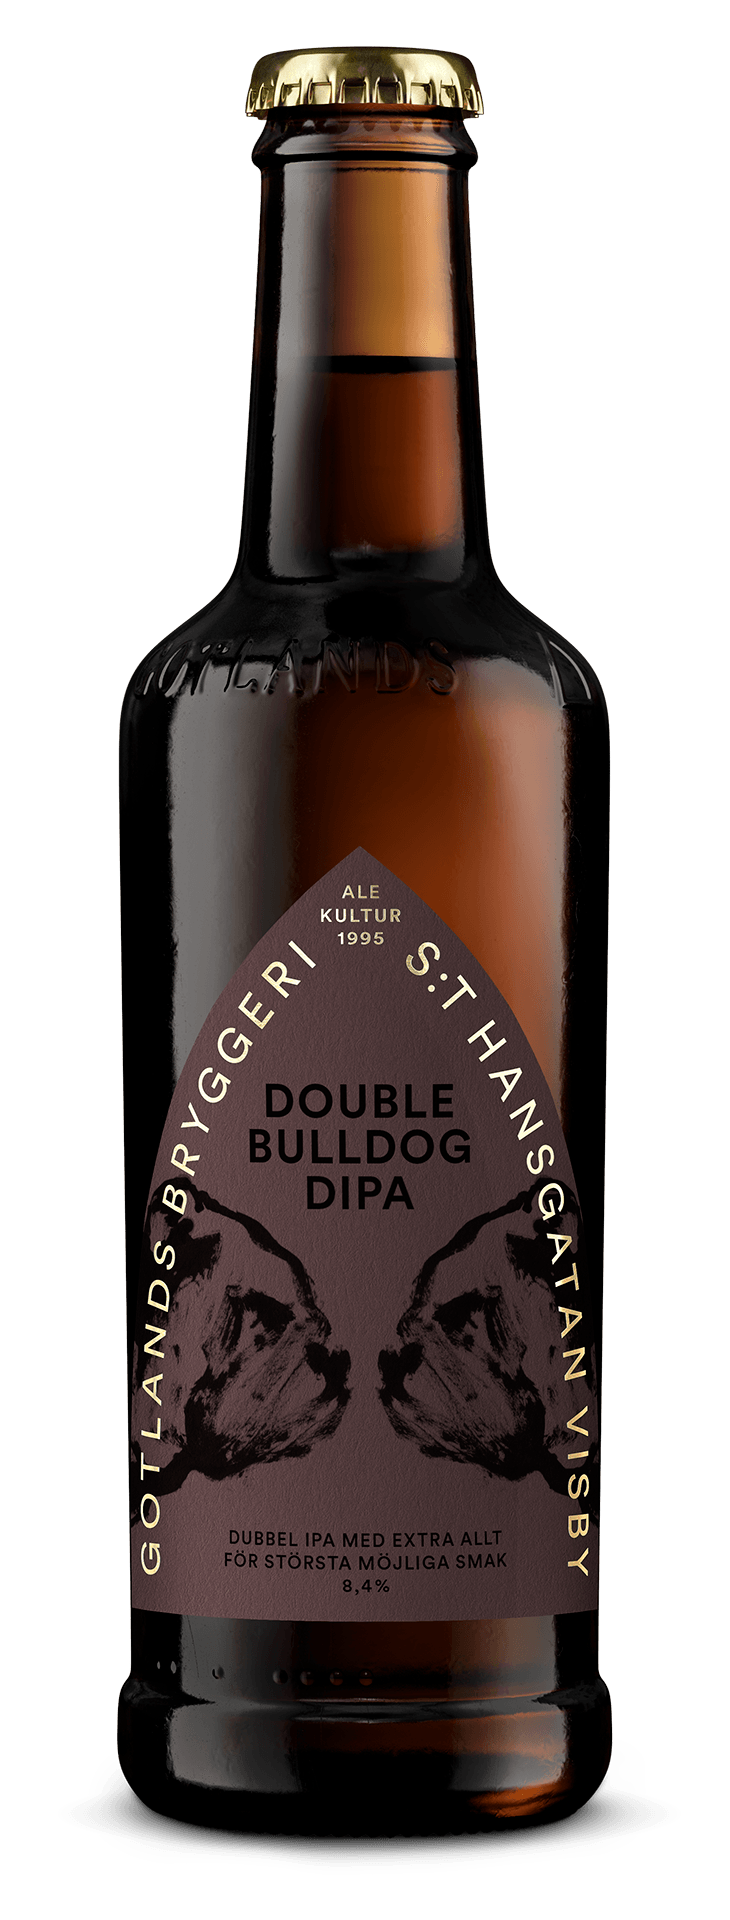 Double Bulldog